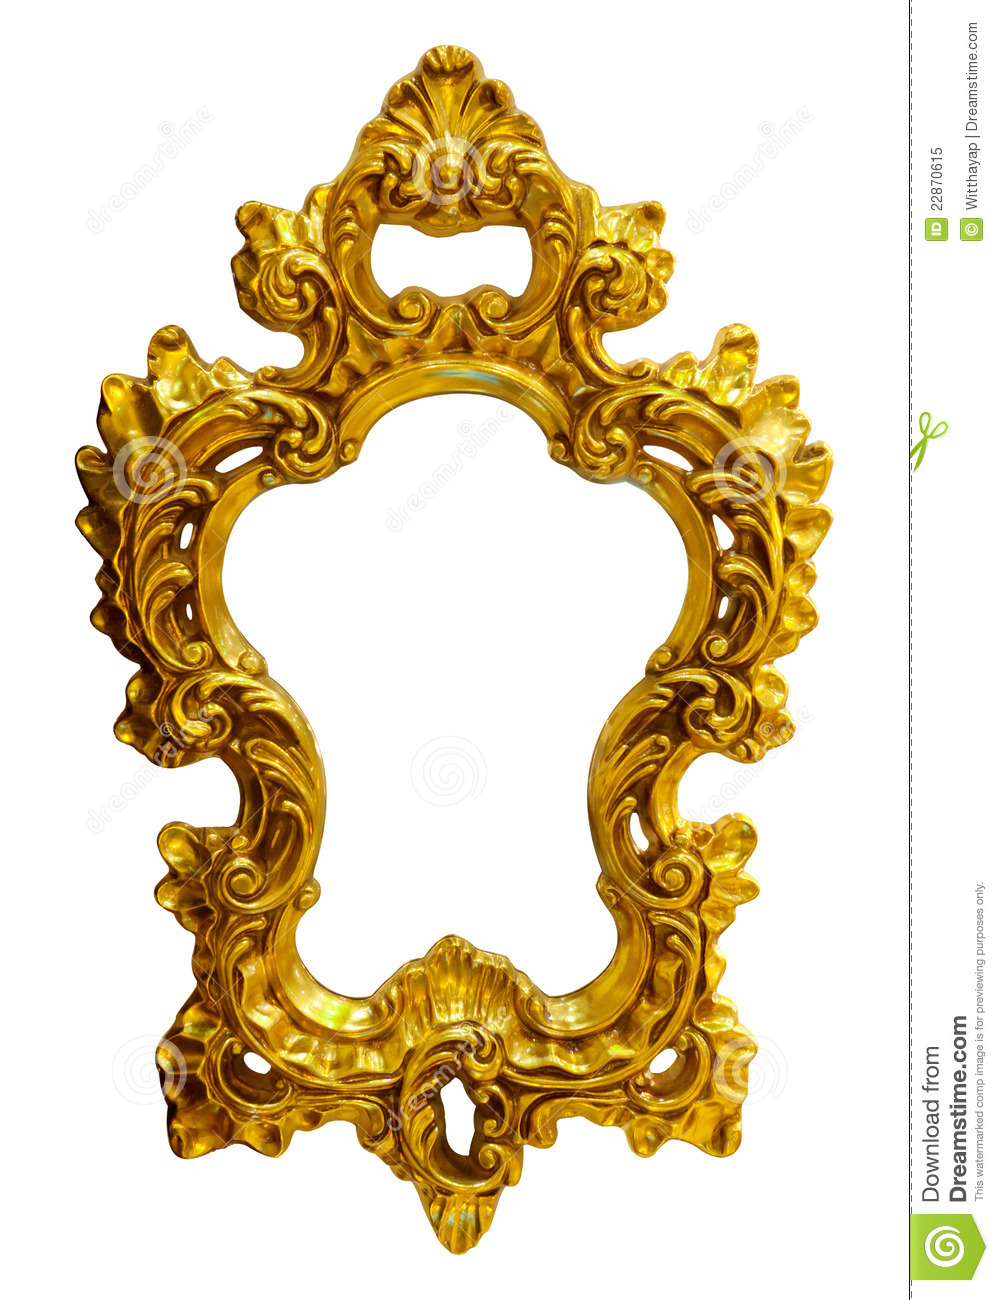 Gold Ornate Oval Frame Royalty Free Stock Photo Image